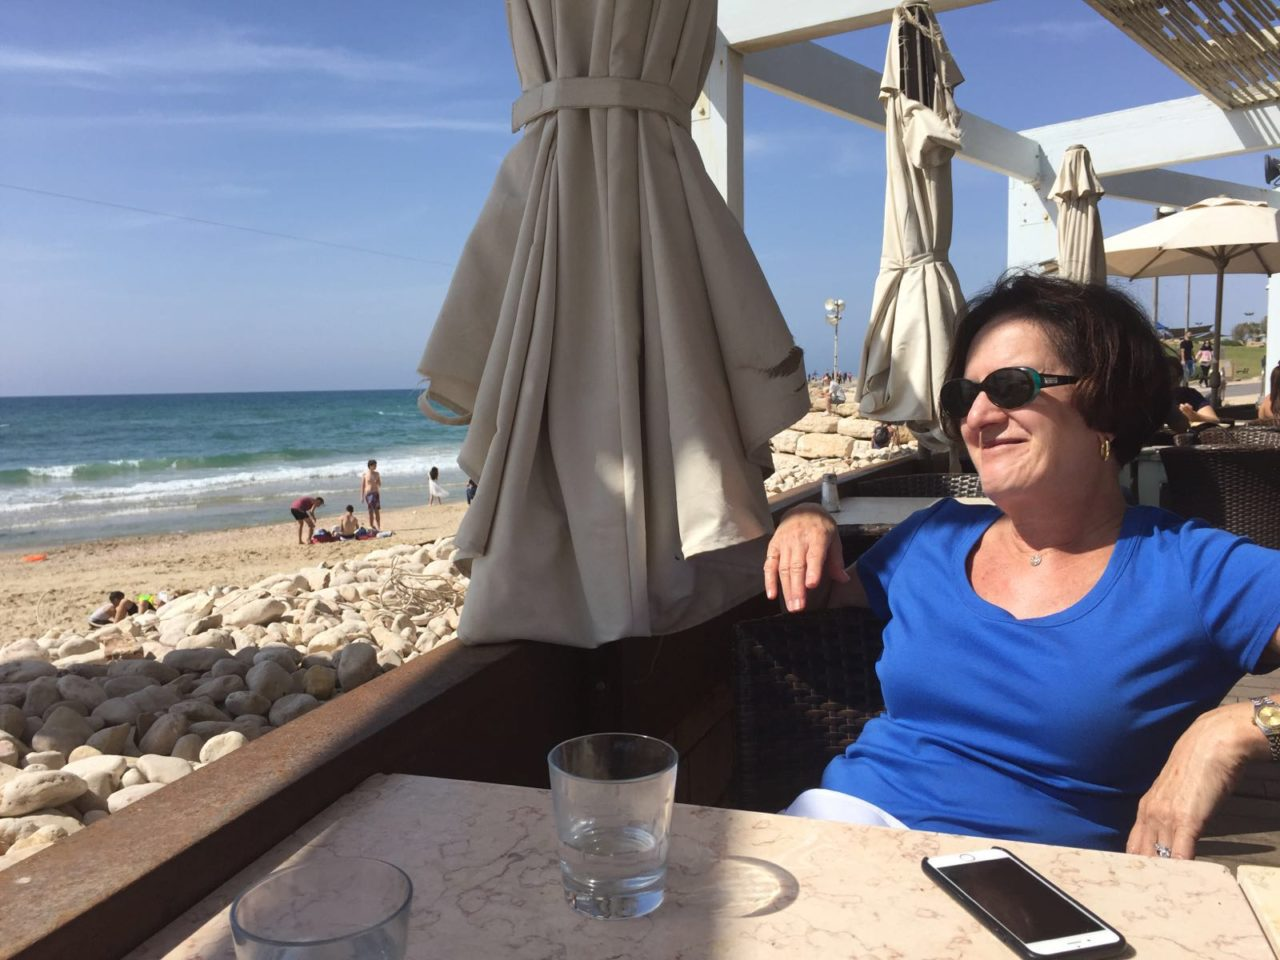 Vacationing in Israel ... Enjoying the view at Manta Ray Restaurant on the Tel Aviv Beach